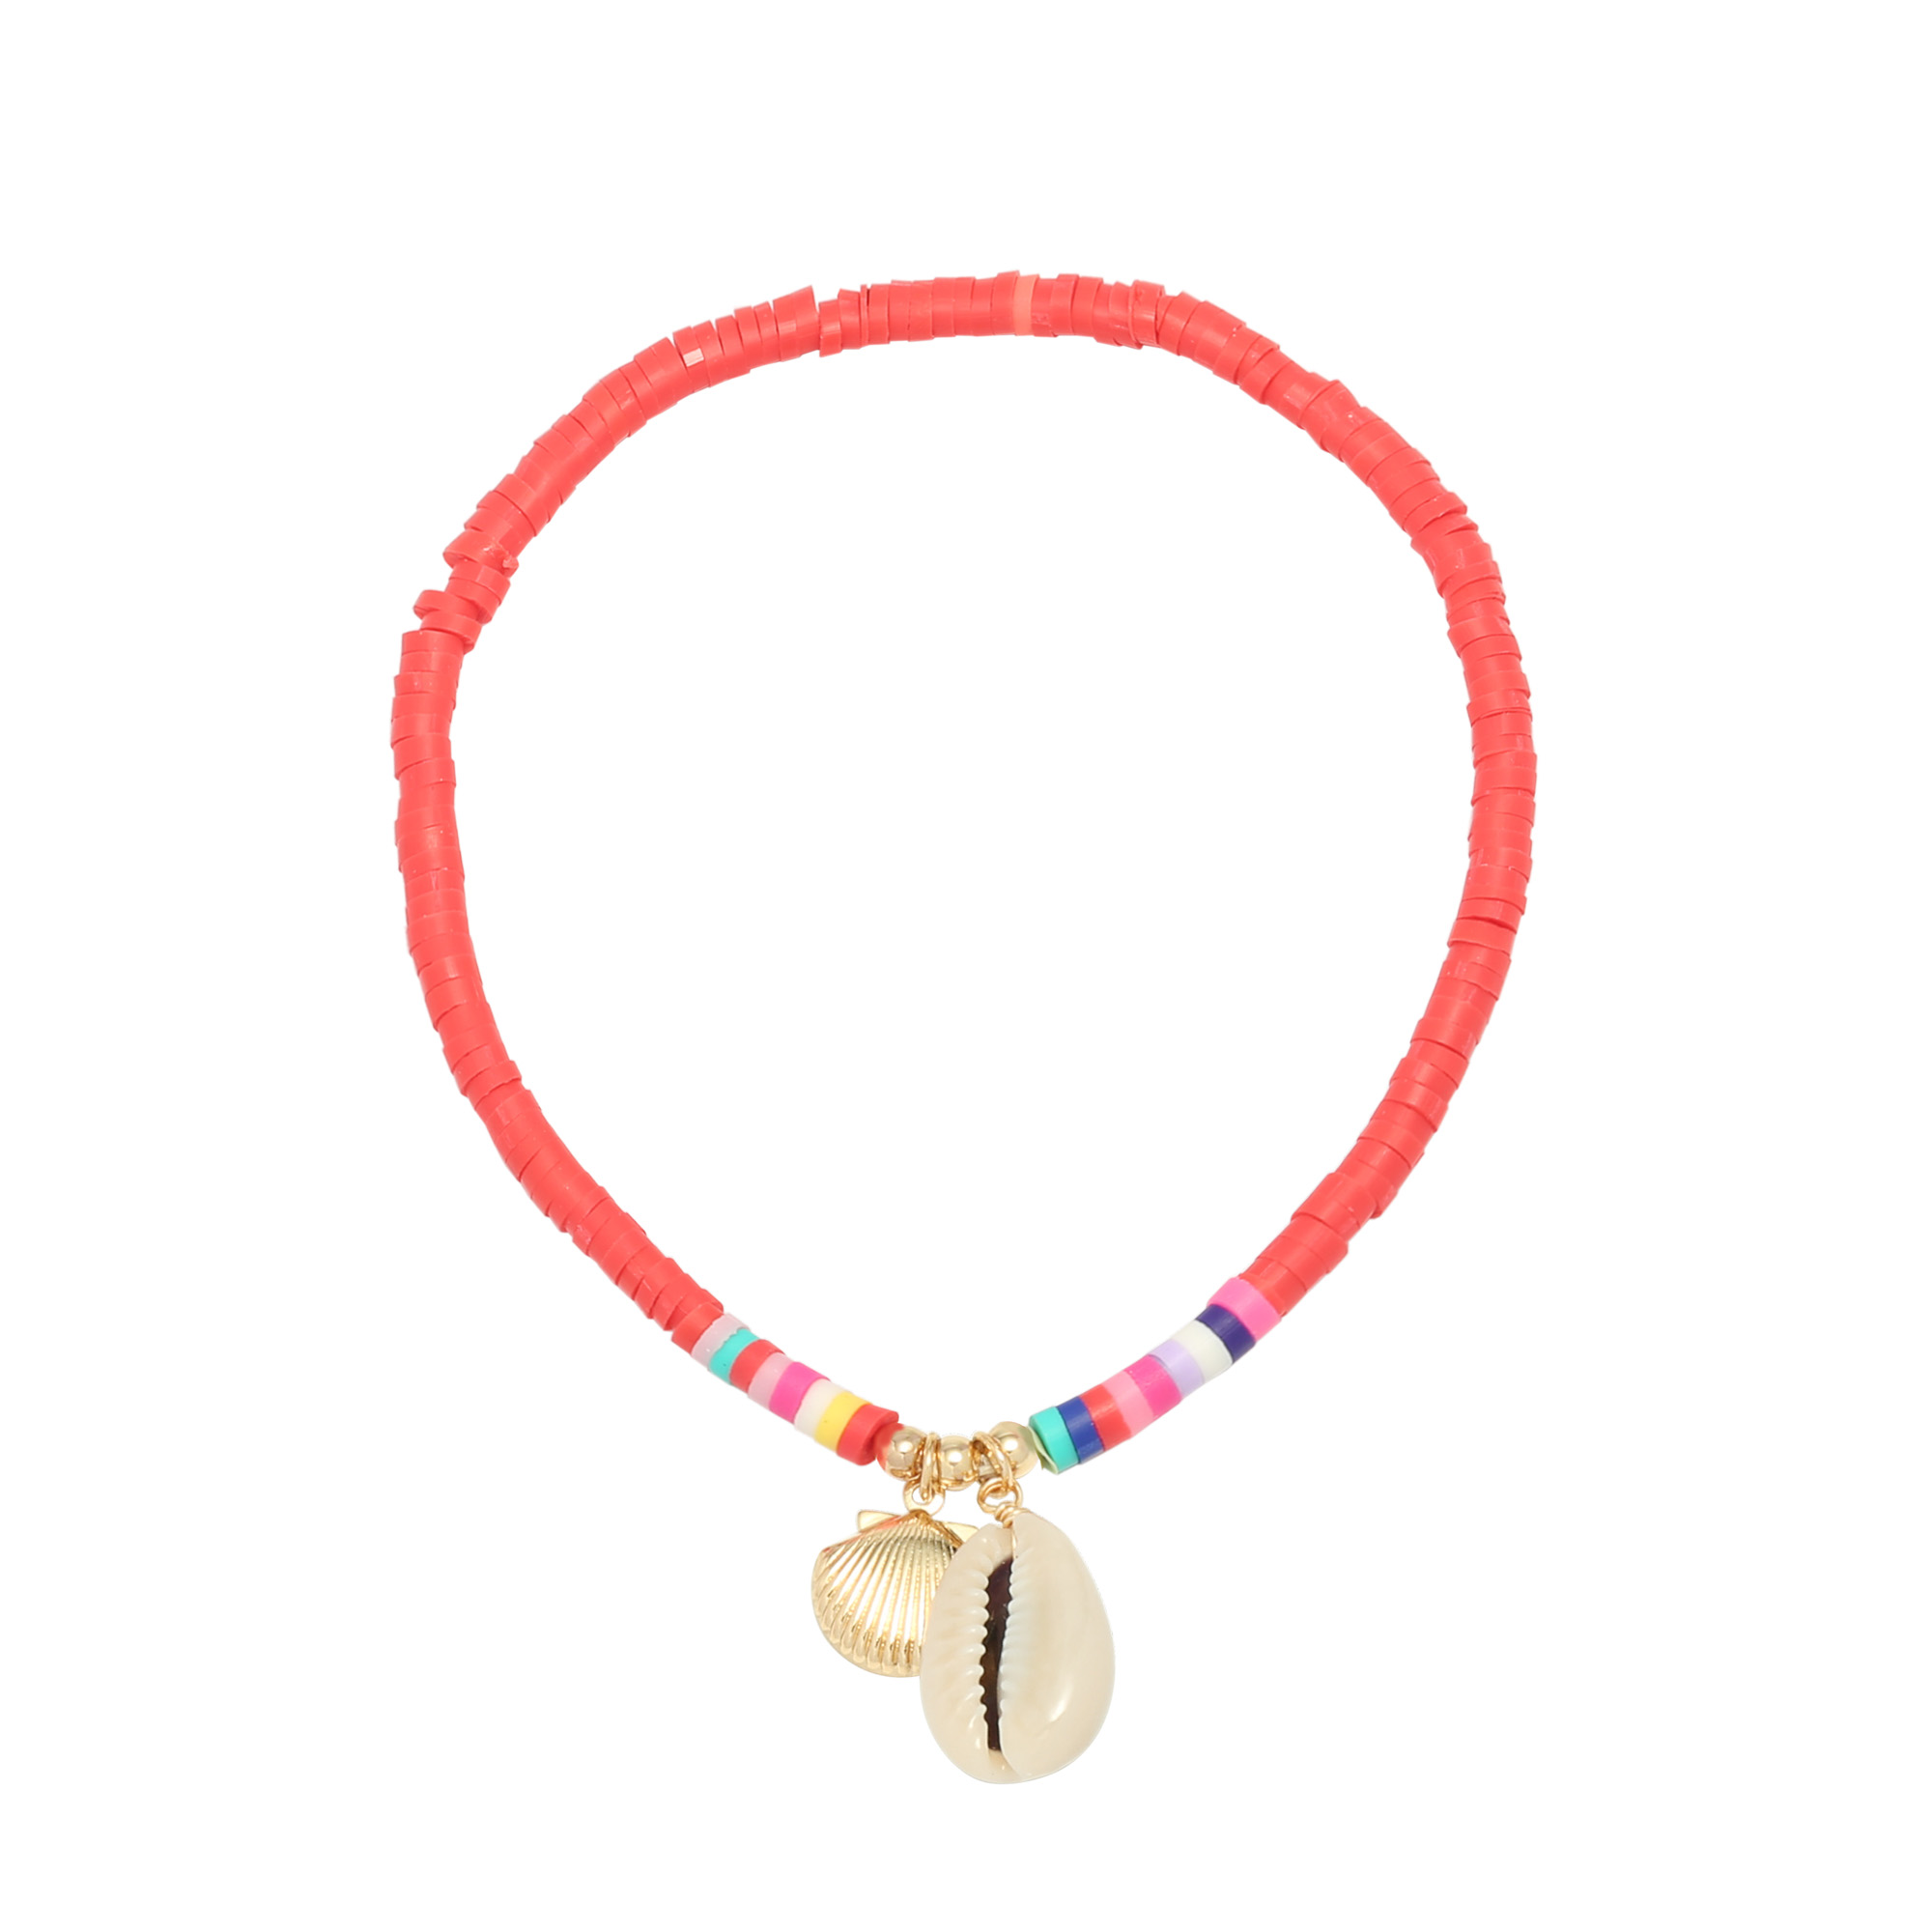 Bracelet de cheville Beach Day